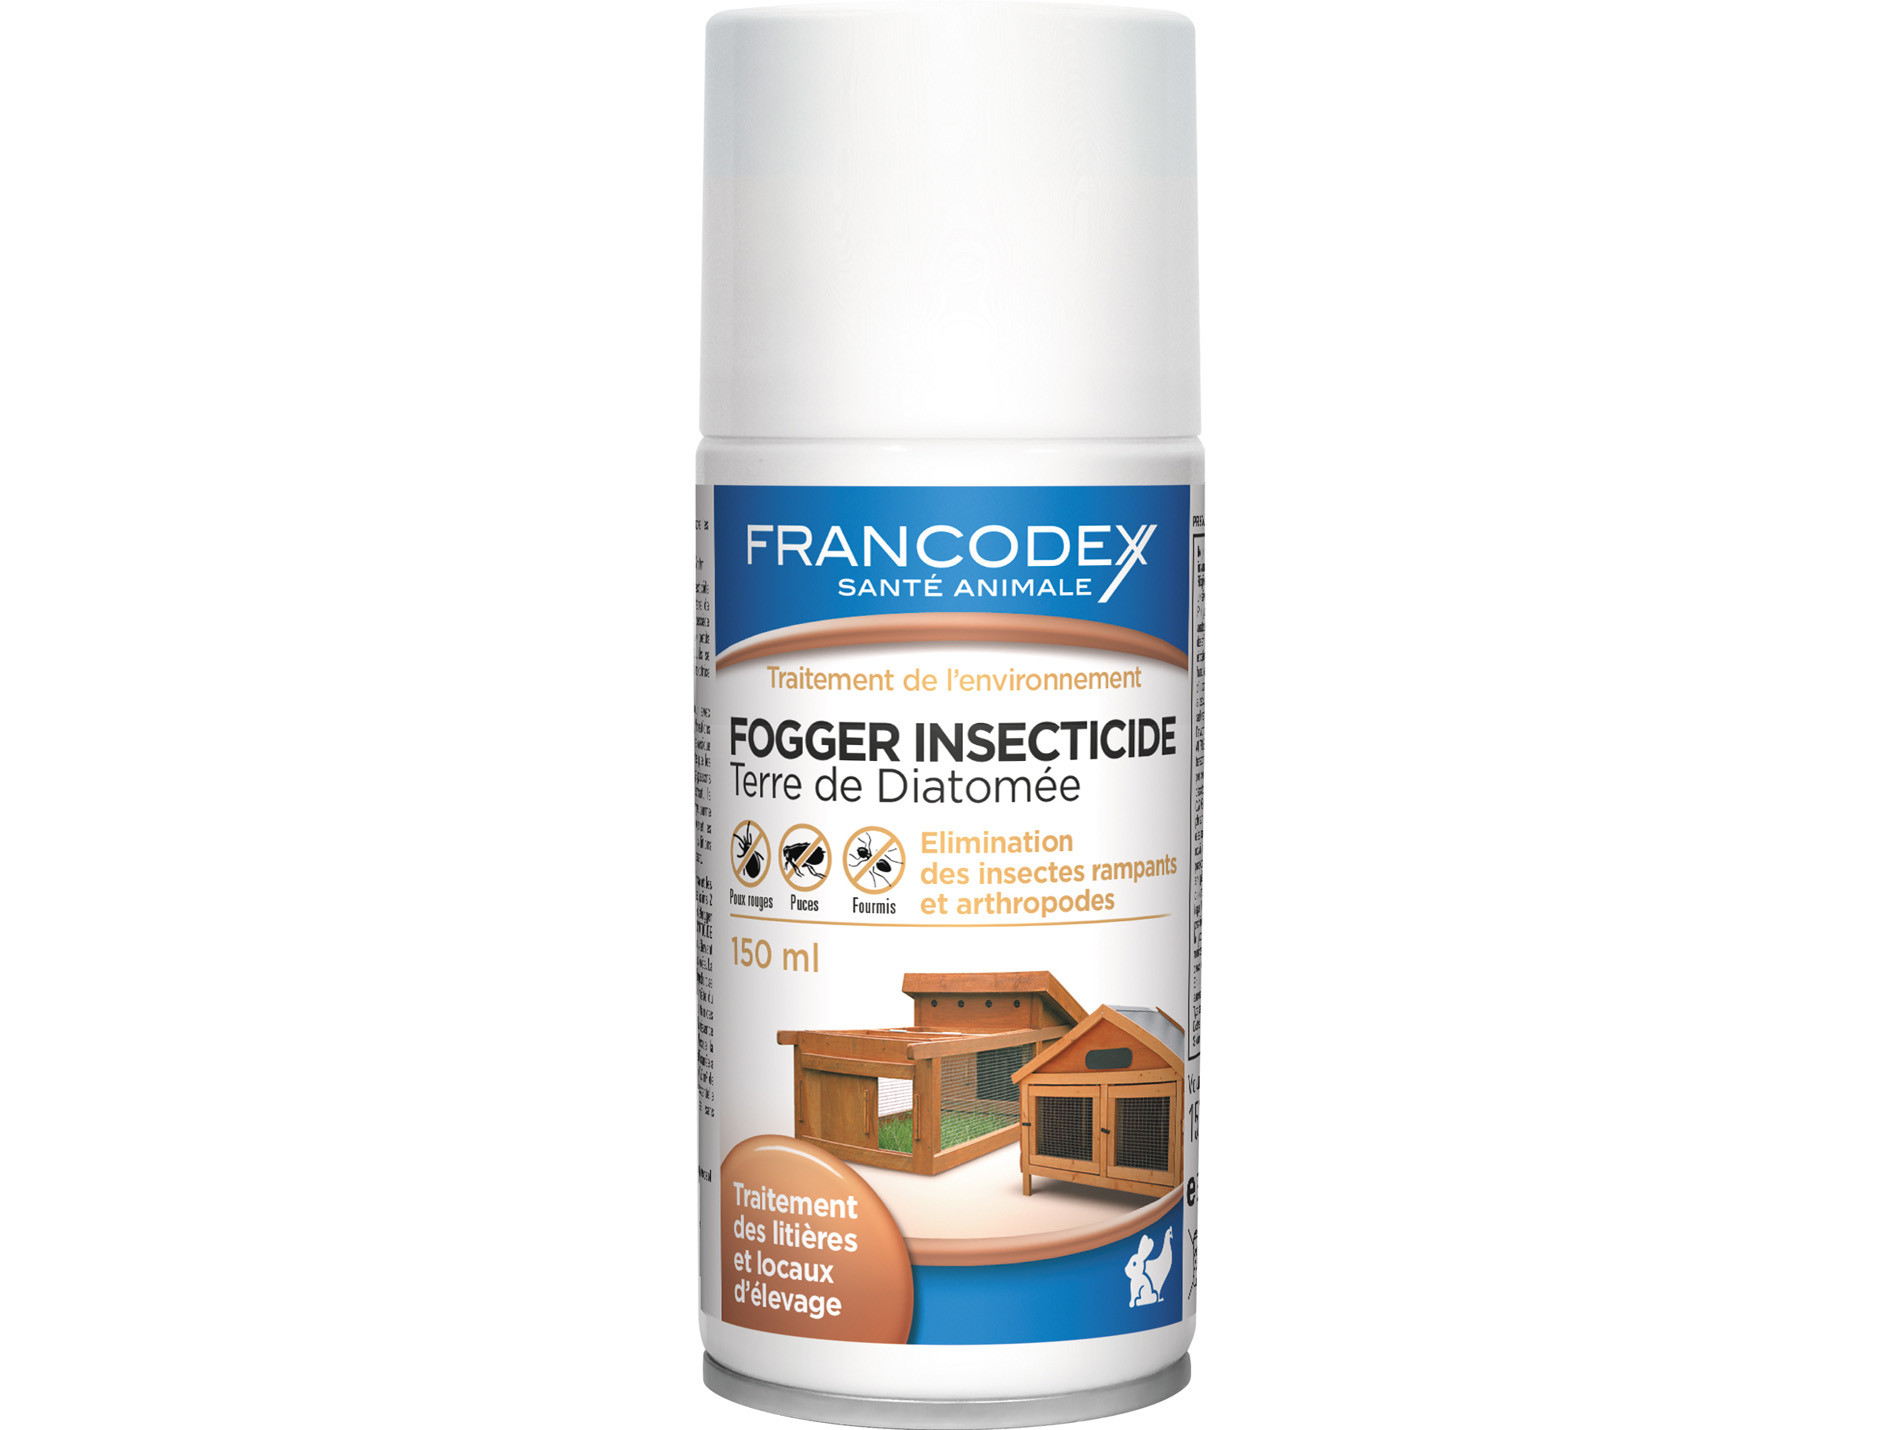 Fogger insecticide basse cour 150ml